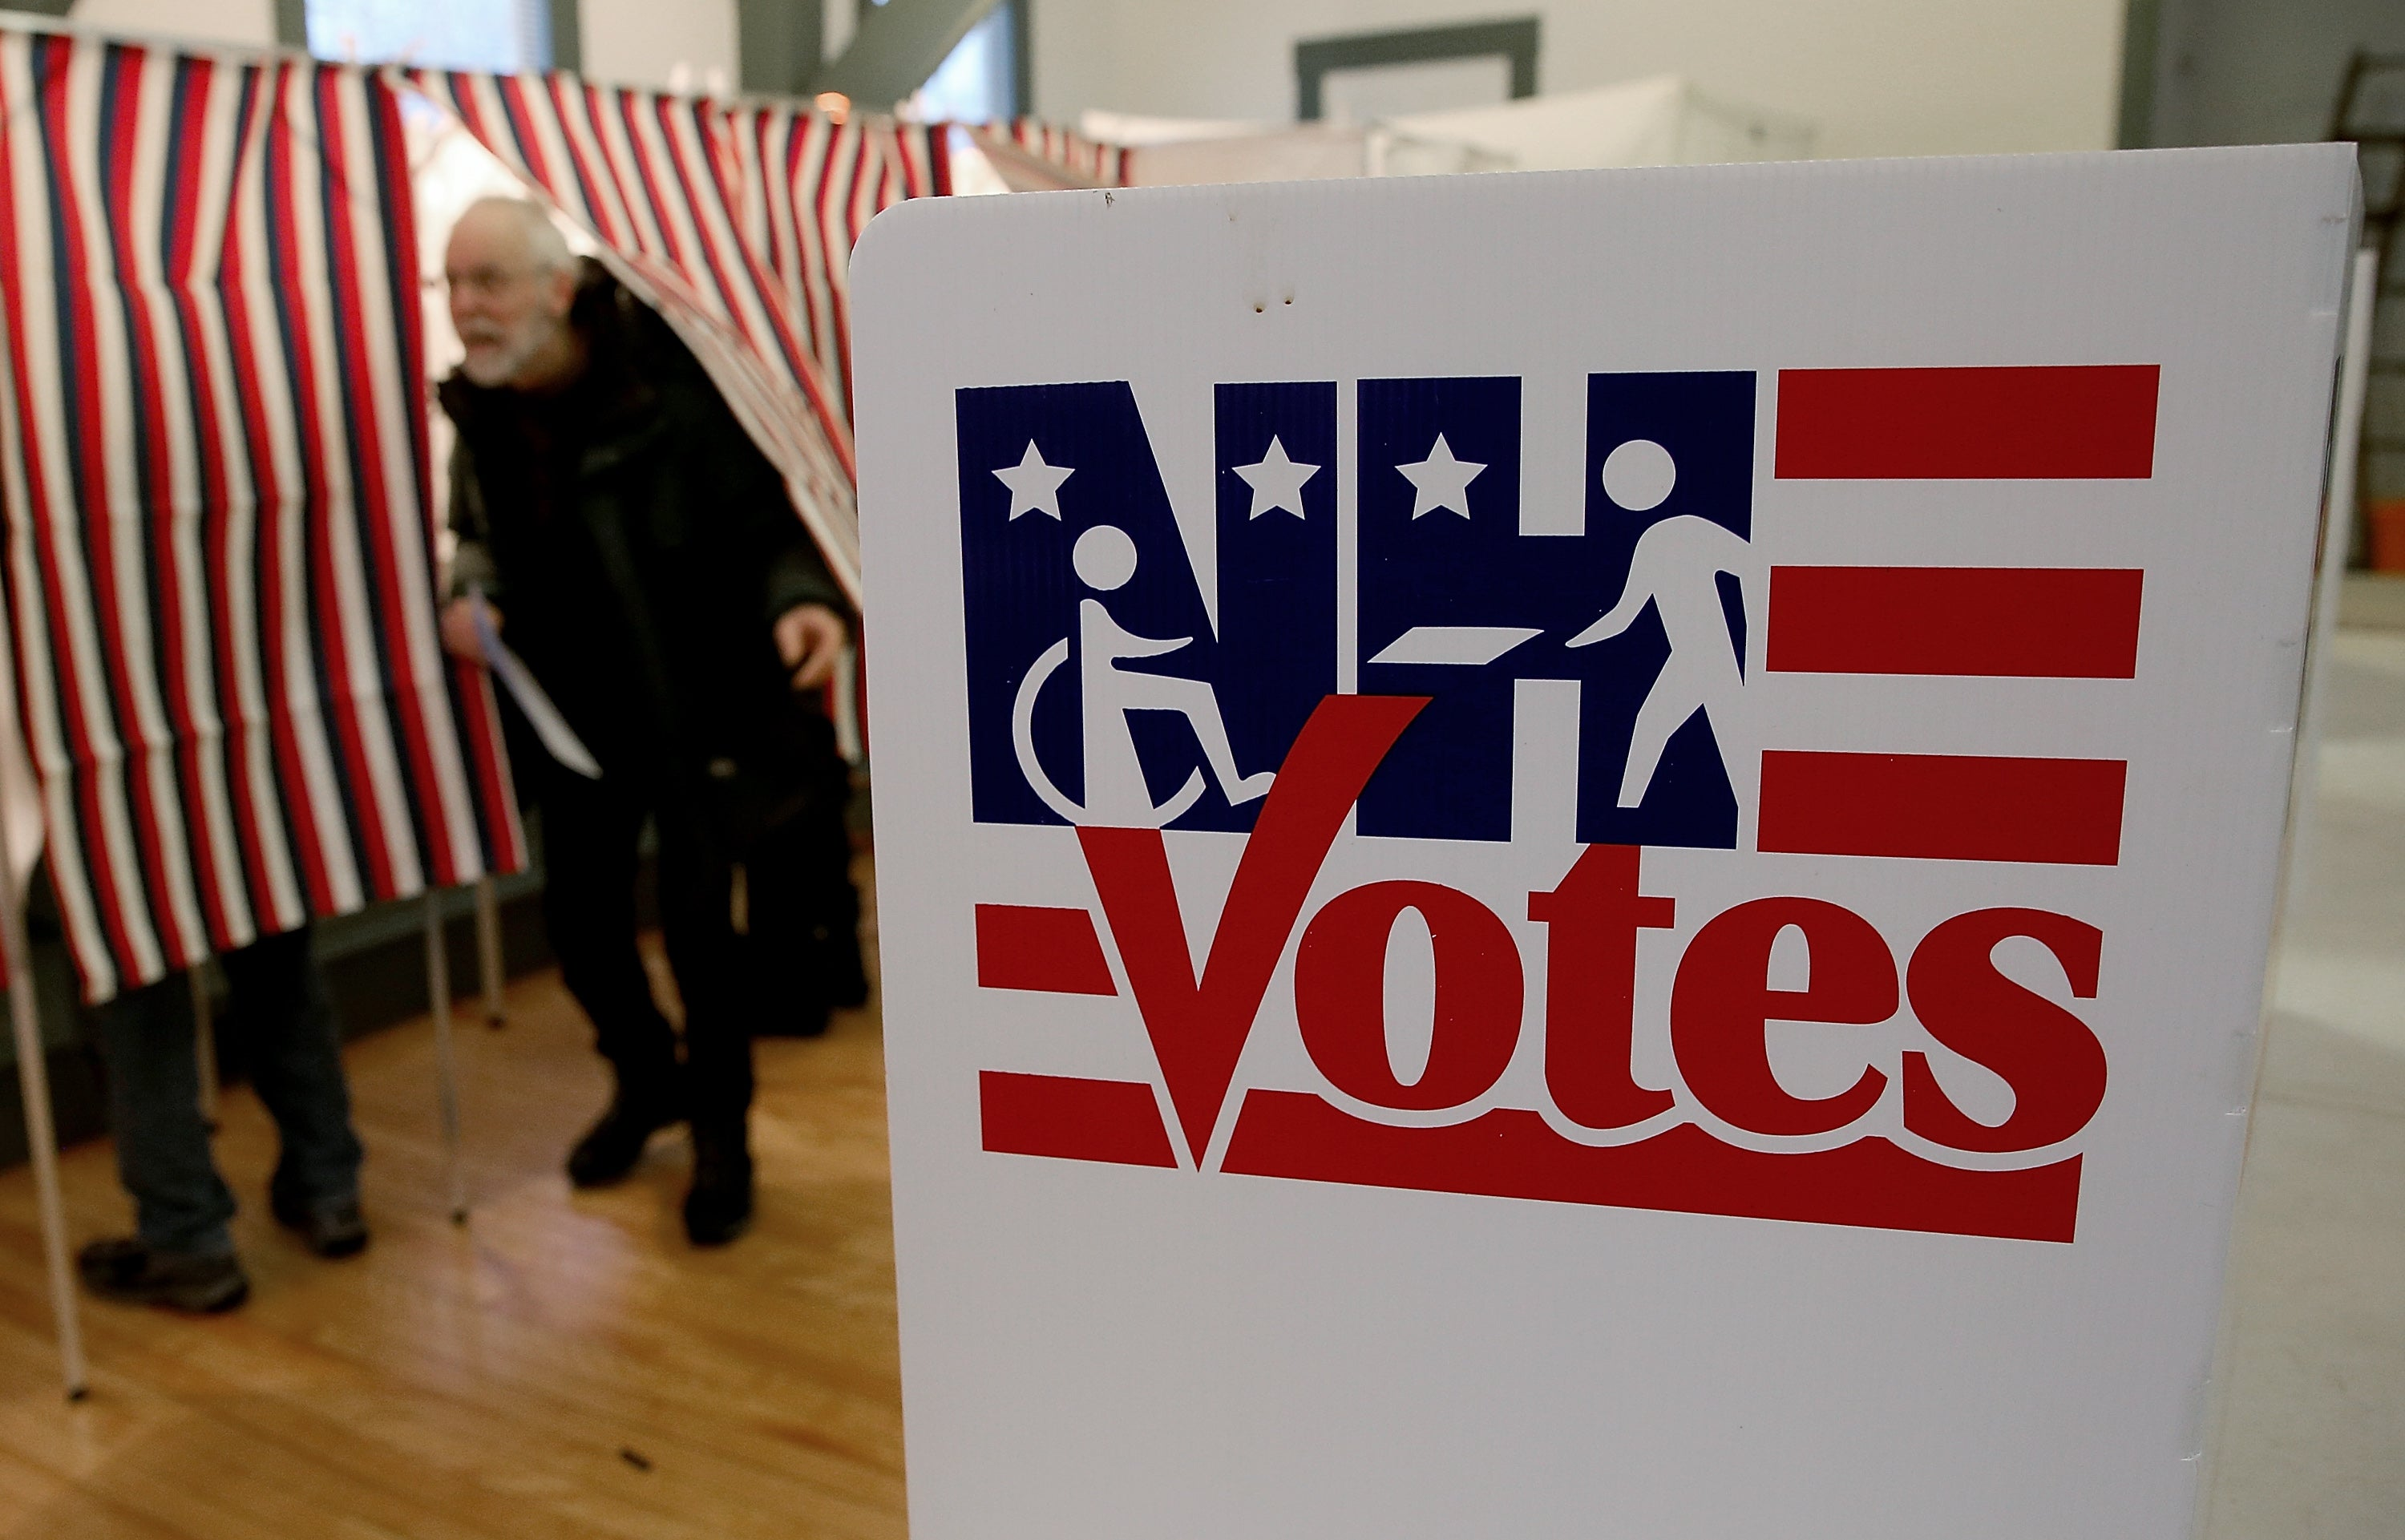 A voter leaves the a voting booth at the Canterbury Town Hall after casting his ballot.